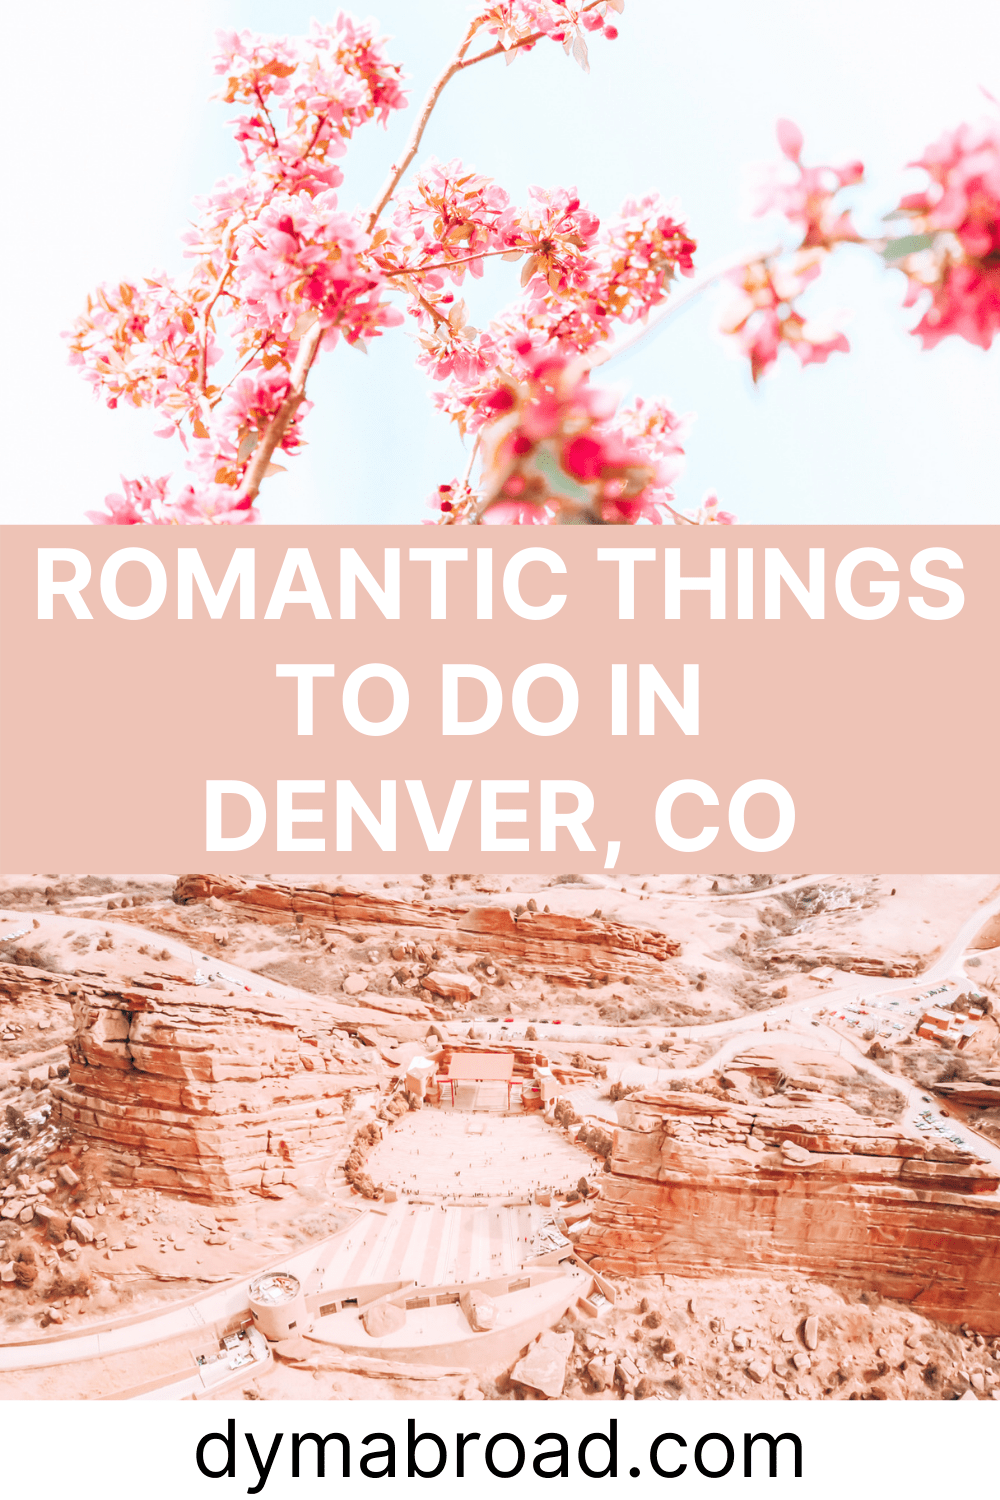 Romantic things to do in Denver second Pinterest image